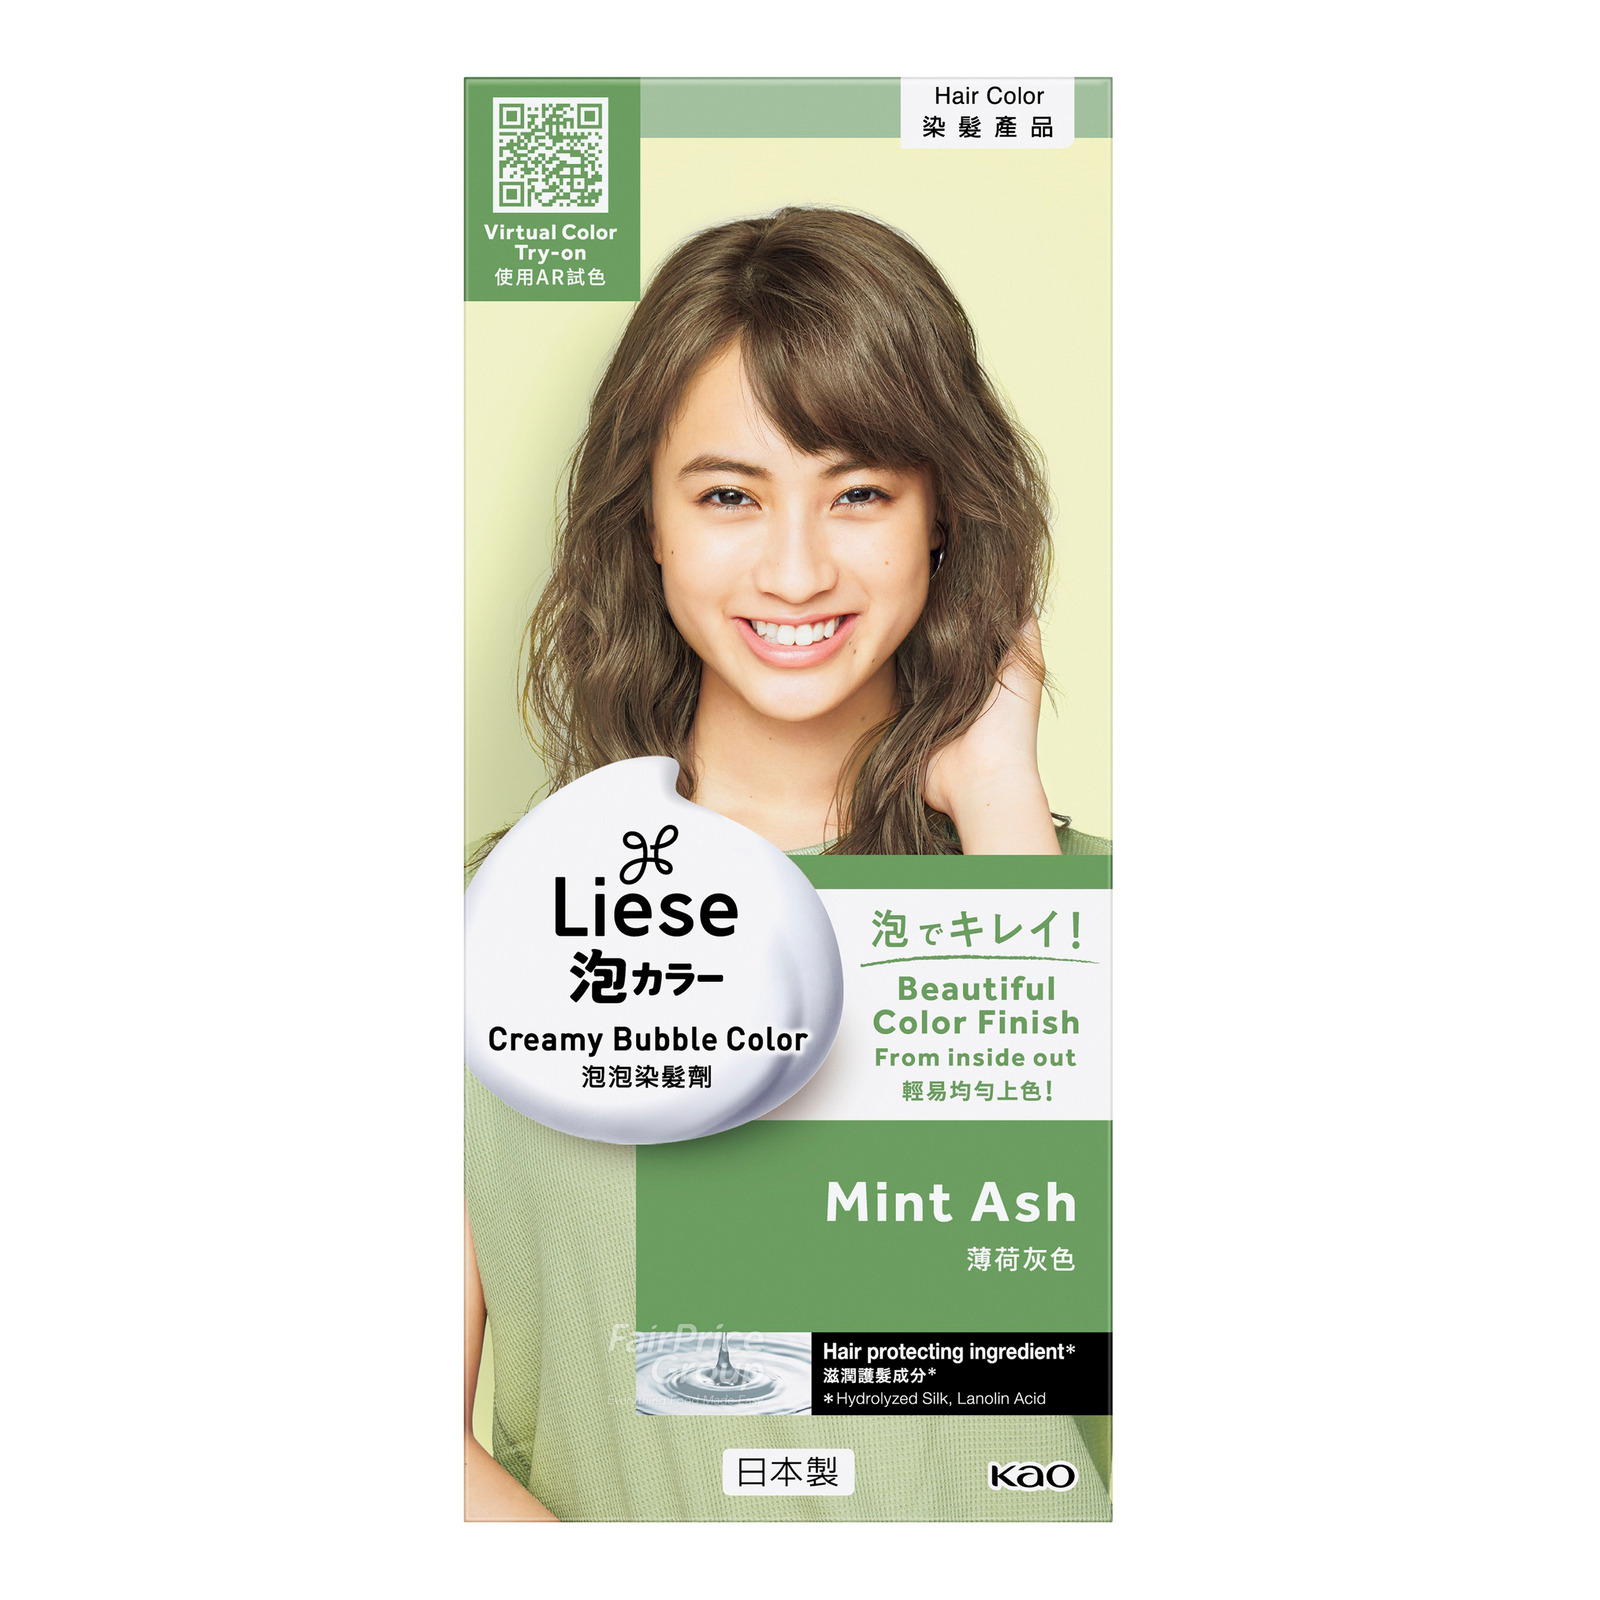 Liese Creamy Bubble Hair Color - Mint Ash